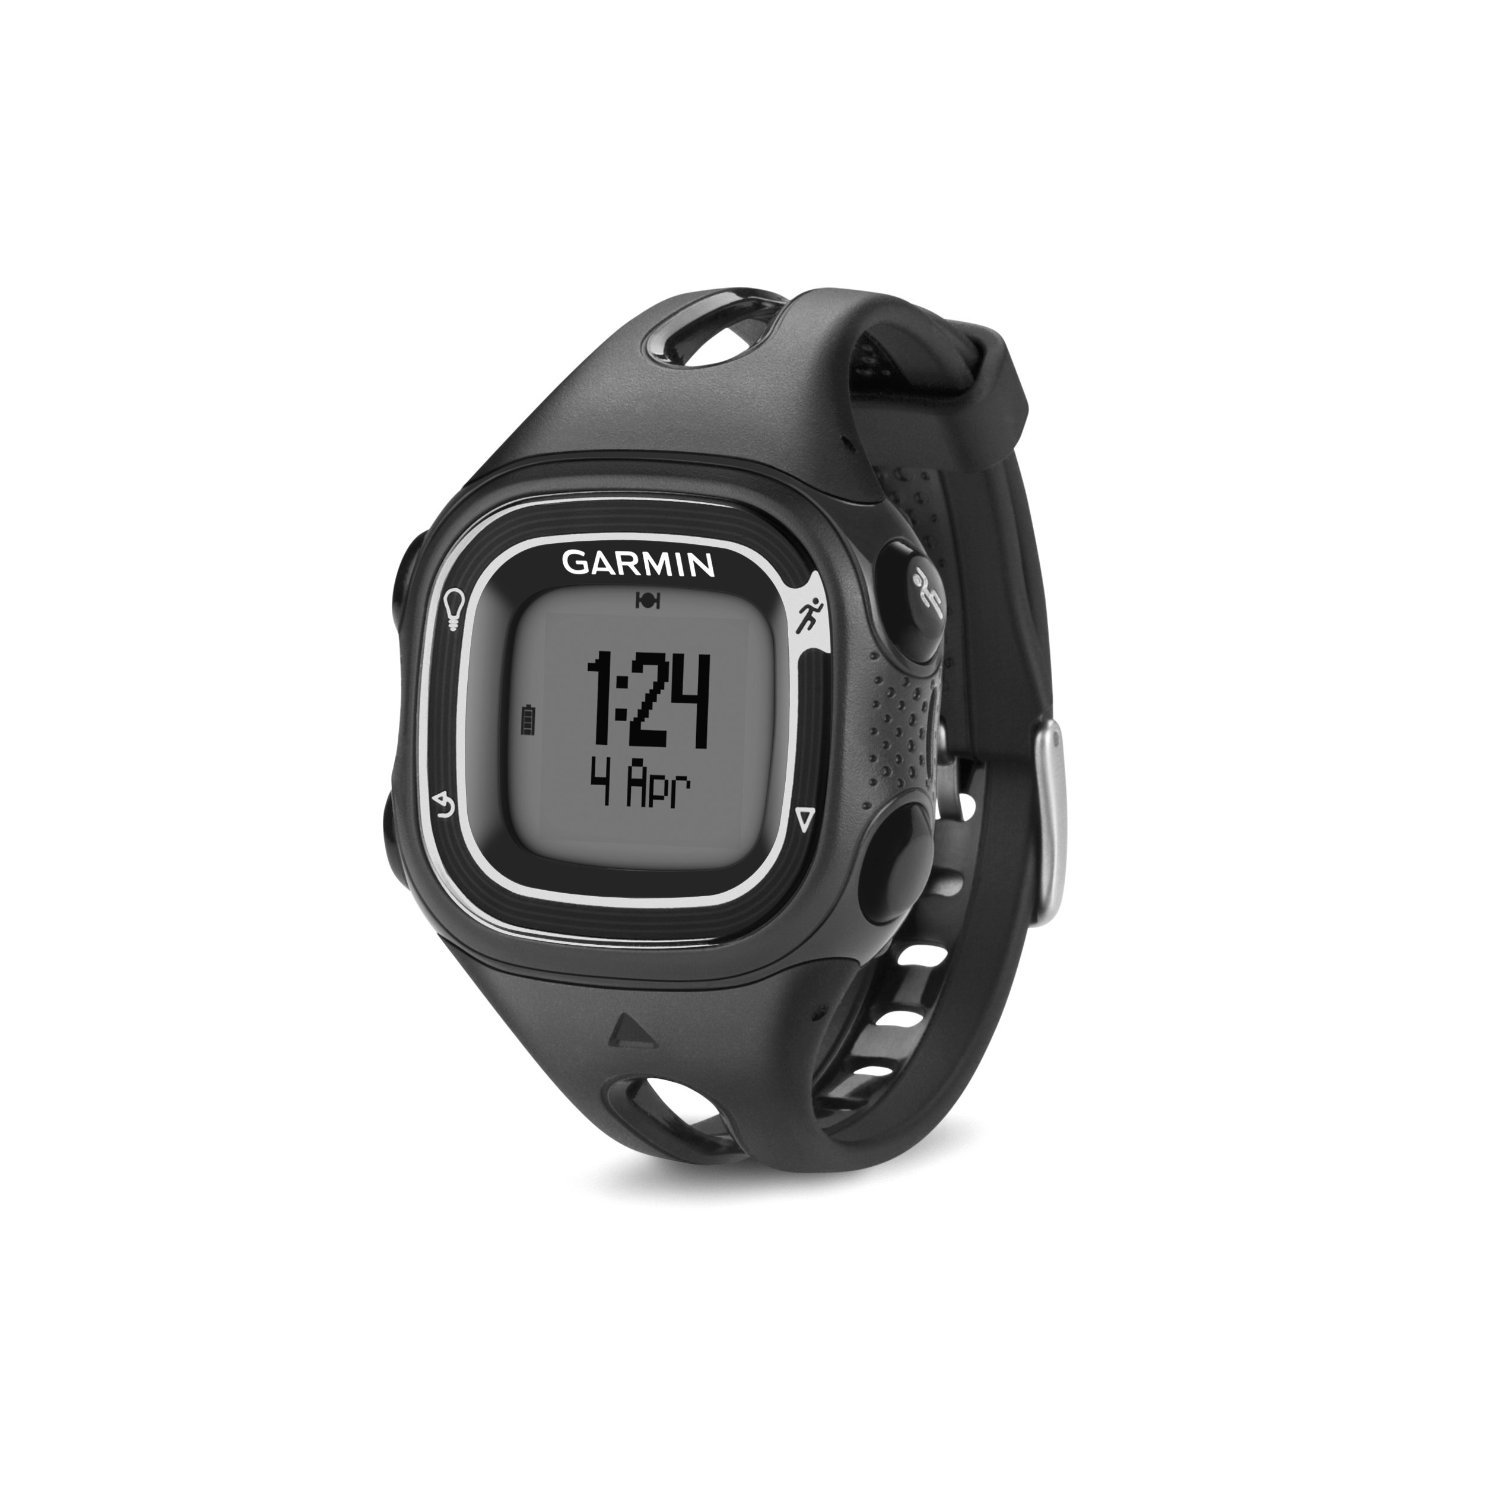 Garmin Forerunner Silver Certified Refurbished Image 2